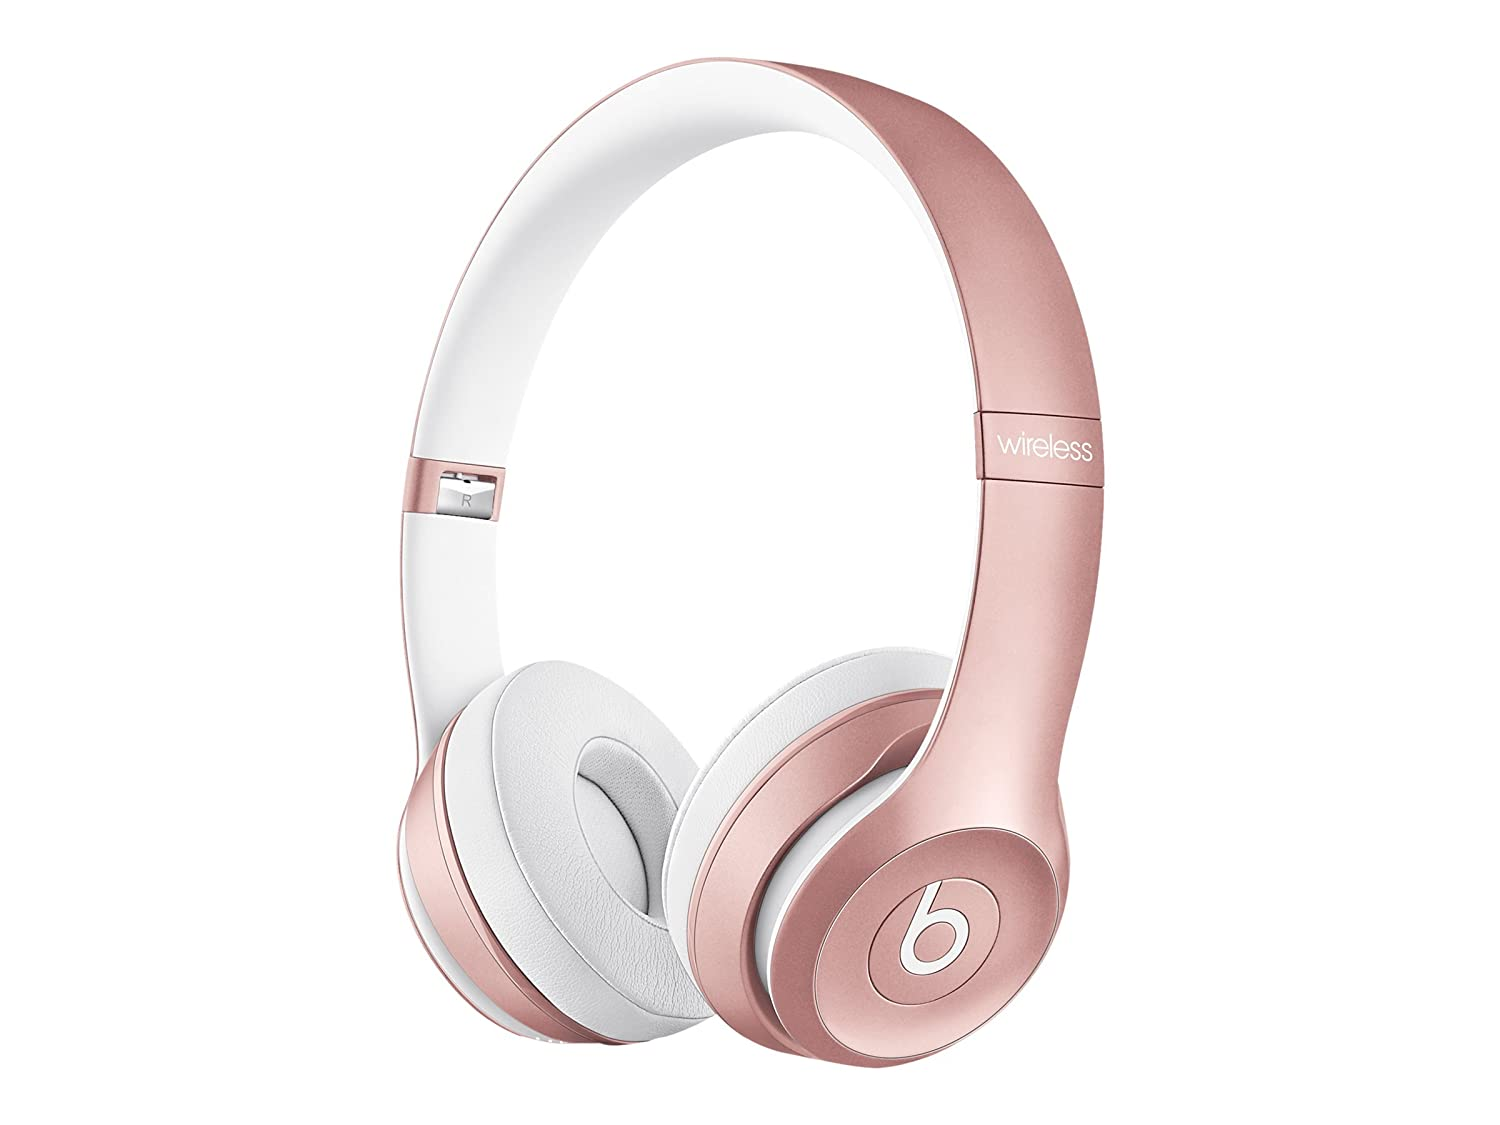 Beats Solo2 Wireless On Ear Headphone Rose Gold Old Turn An Brick Phone Into A Bluetooth Headset For Your Iphone Model Home Audio Theater